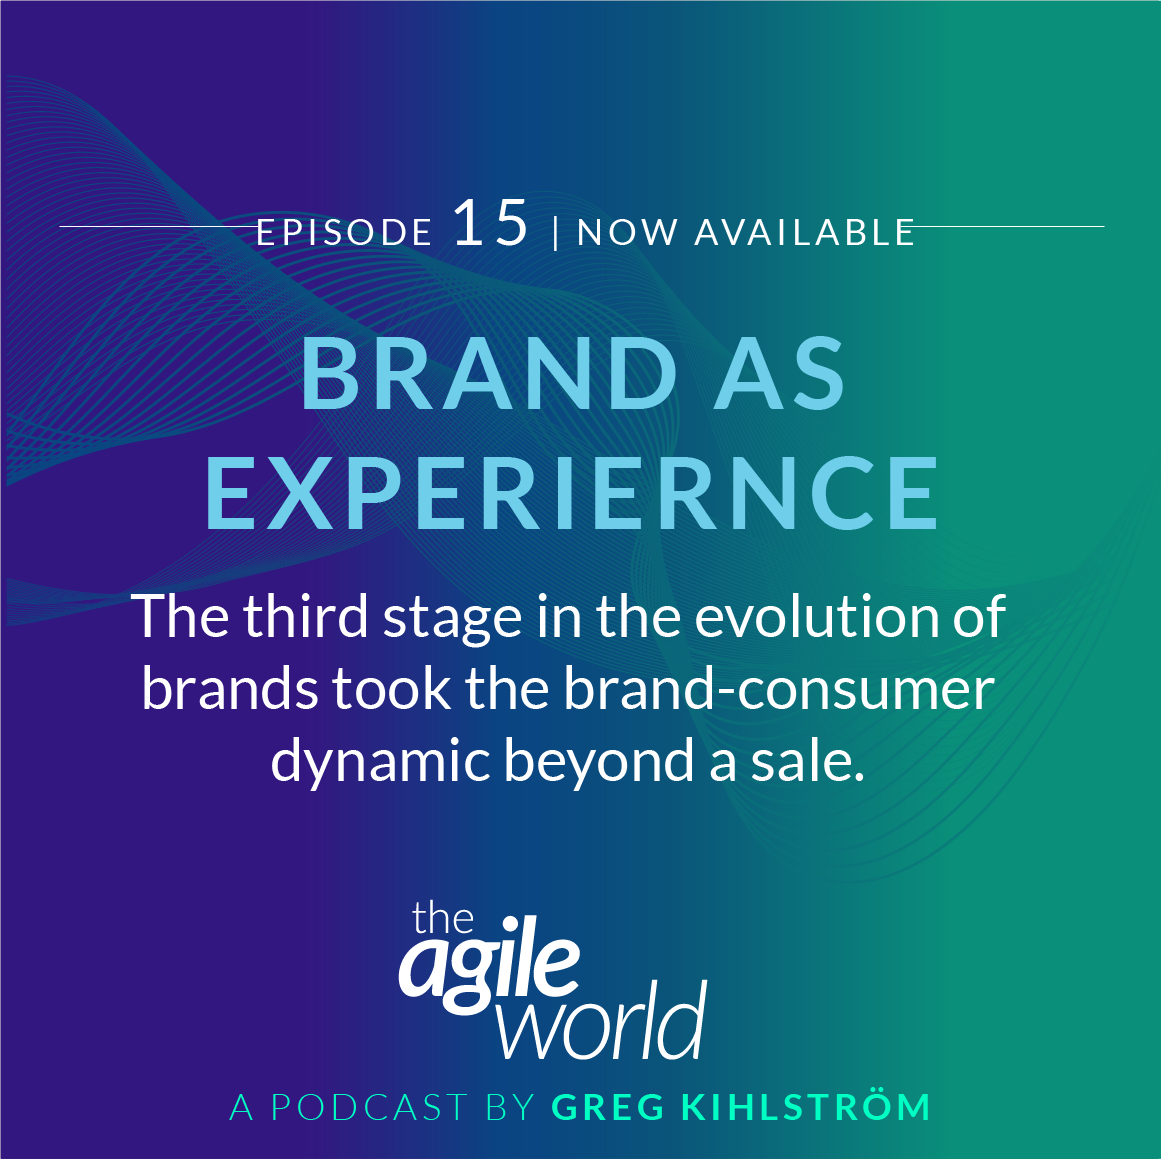 TheAgileWorld-Episode-Greg-Kihlstrom-15.png